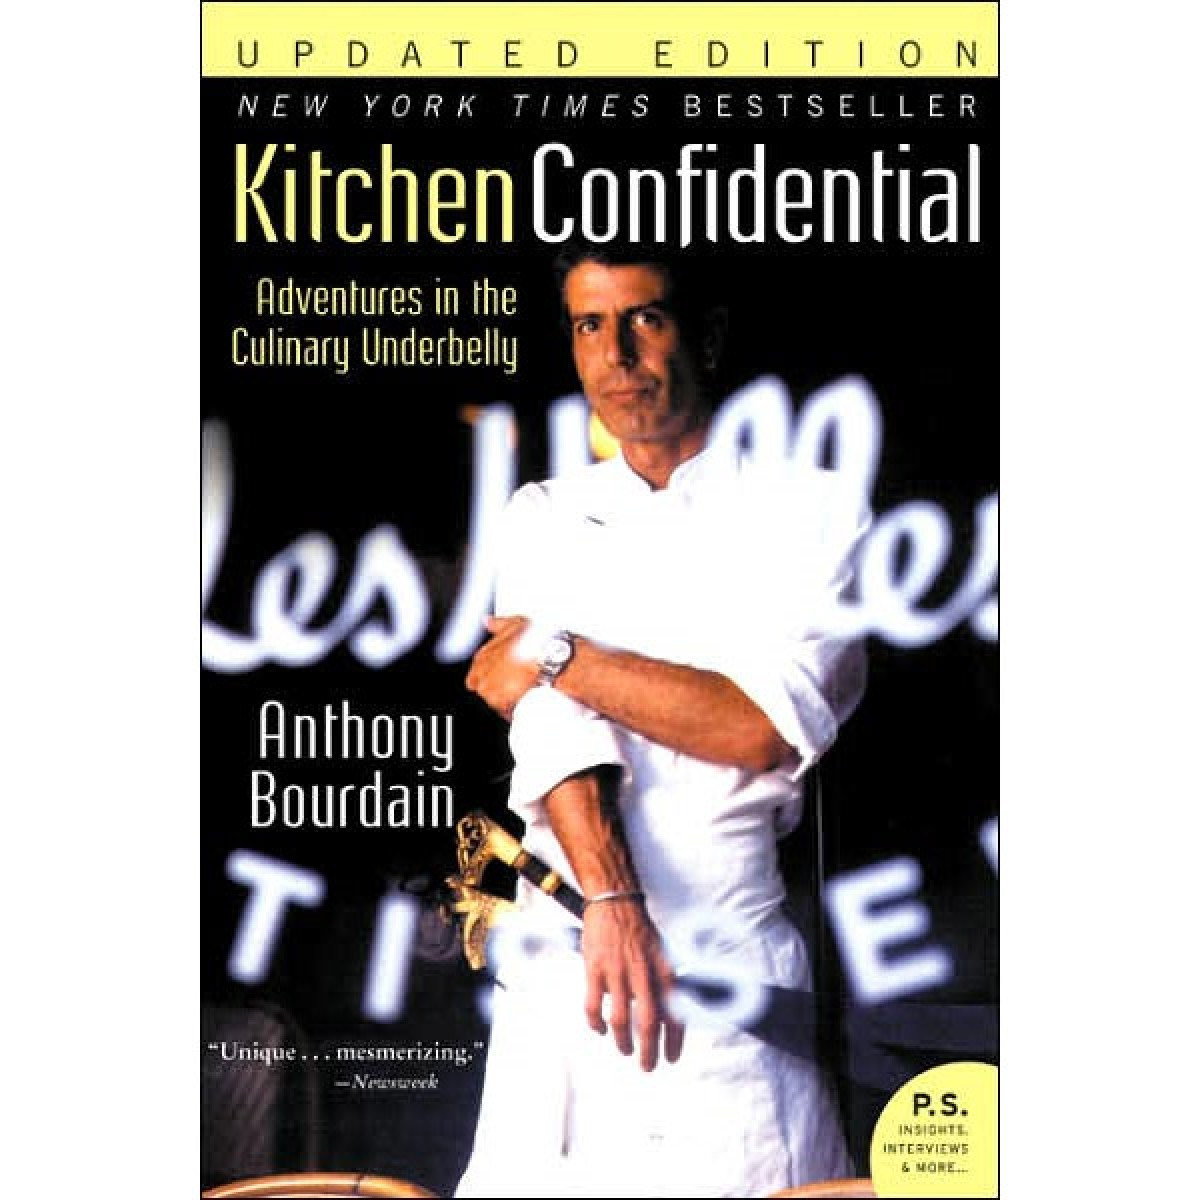 https://i1.wp.com/zenwahm.com/wp-content/uploads/2015/01/kitchen-confidential.jpg